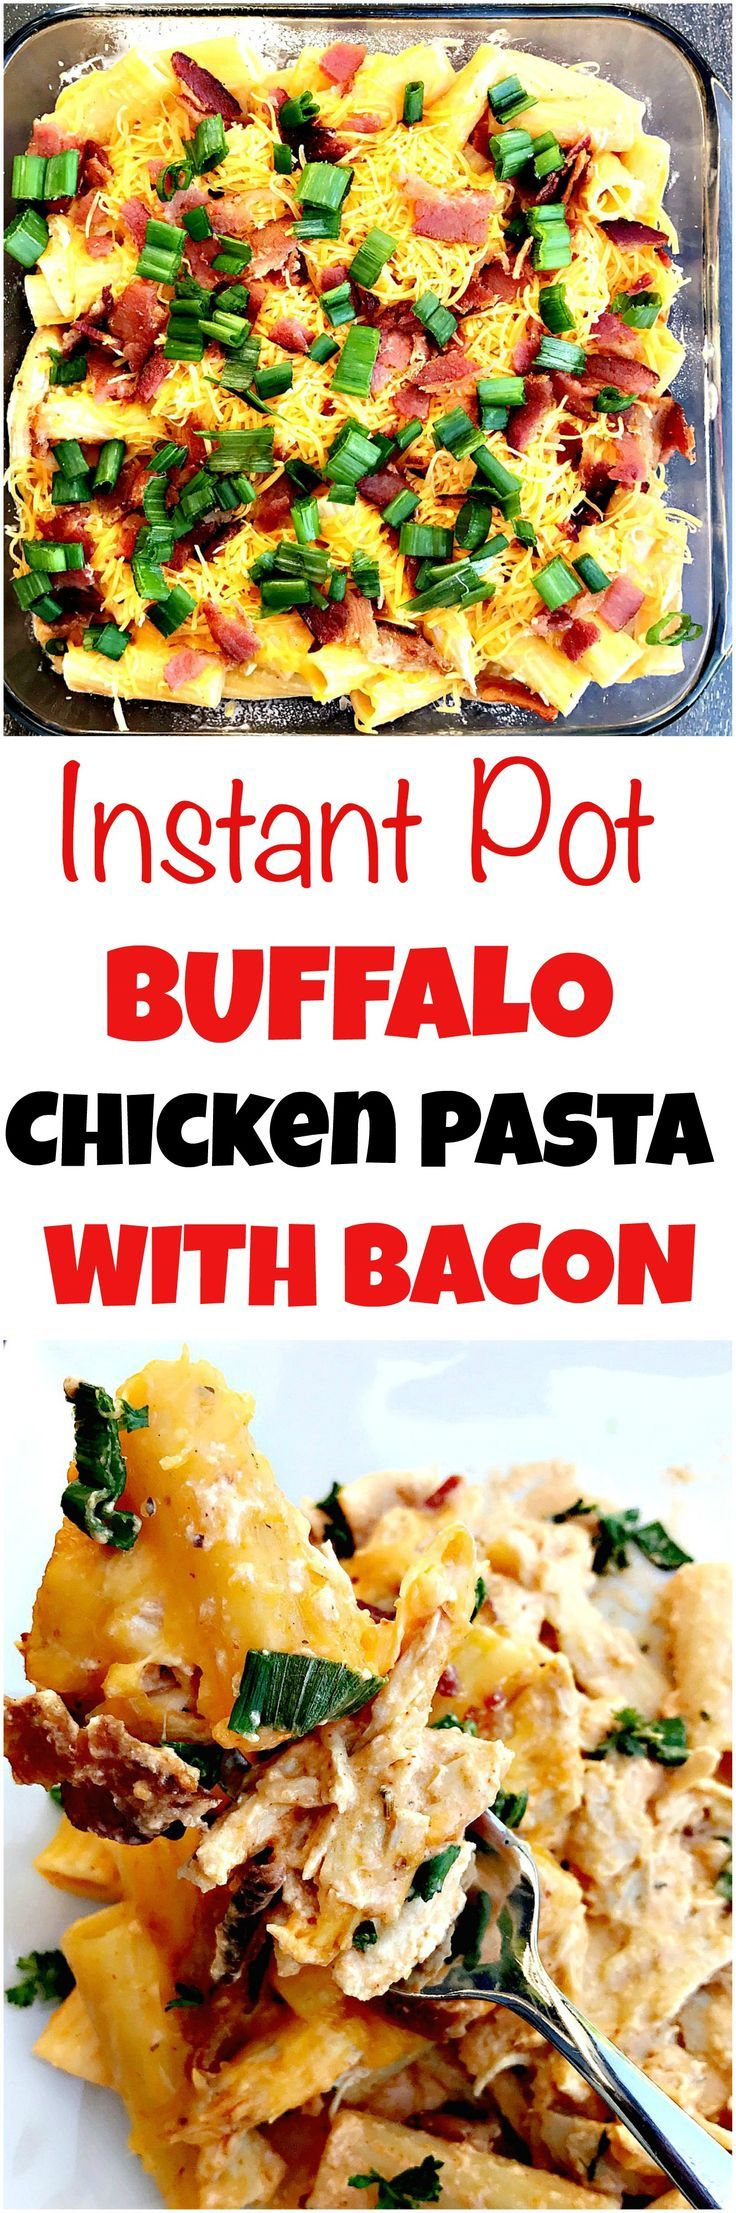 Instant Pot Buffalo Chicken Rigatoni Pasta with Bacon is a quick, easy, healthy, a low-carb dish filled juicy chicken and Franks Red Hot Buffalo sauce.